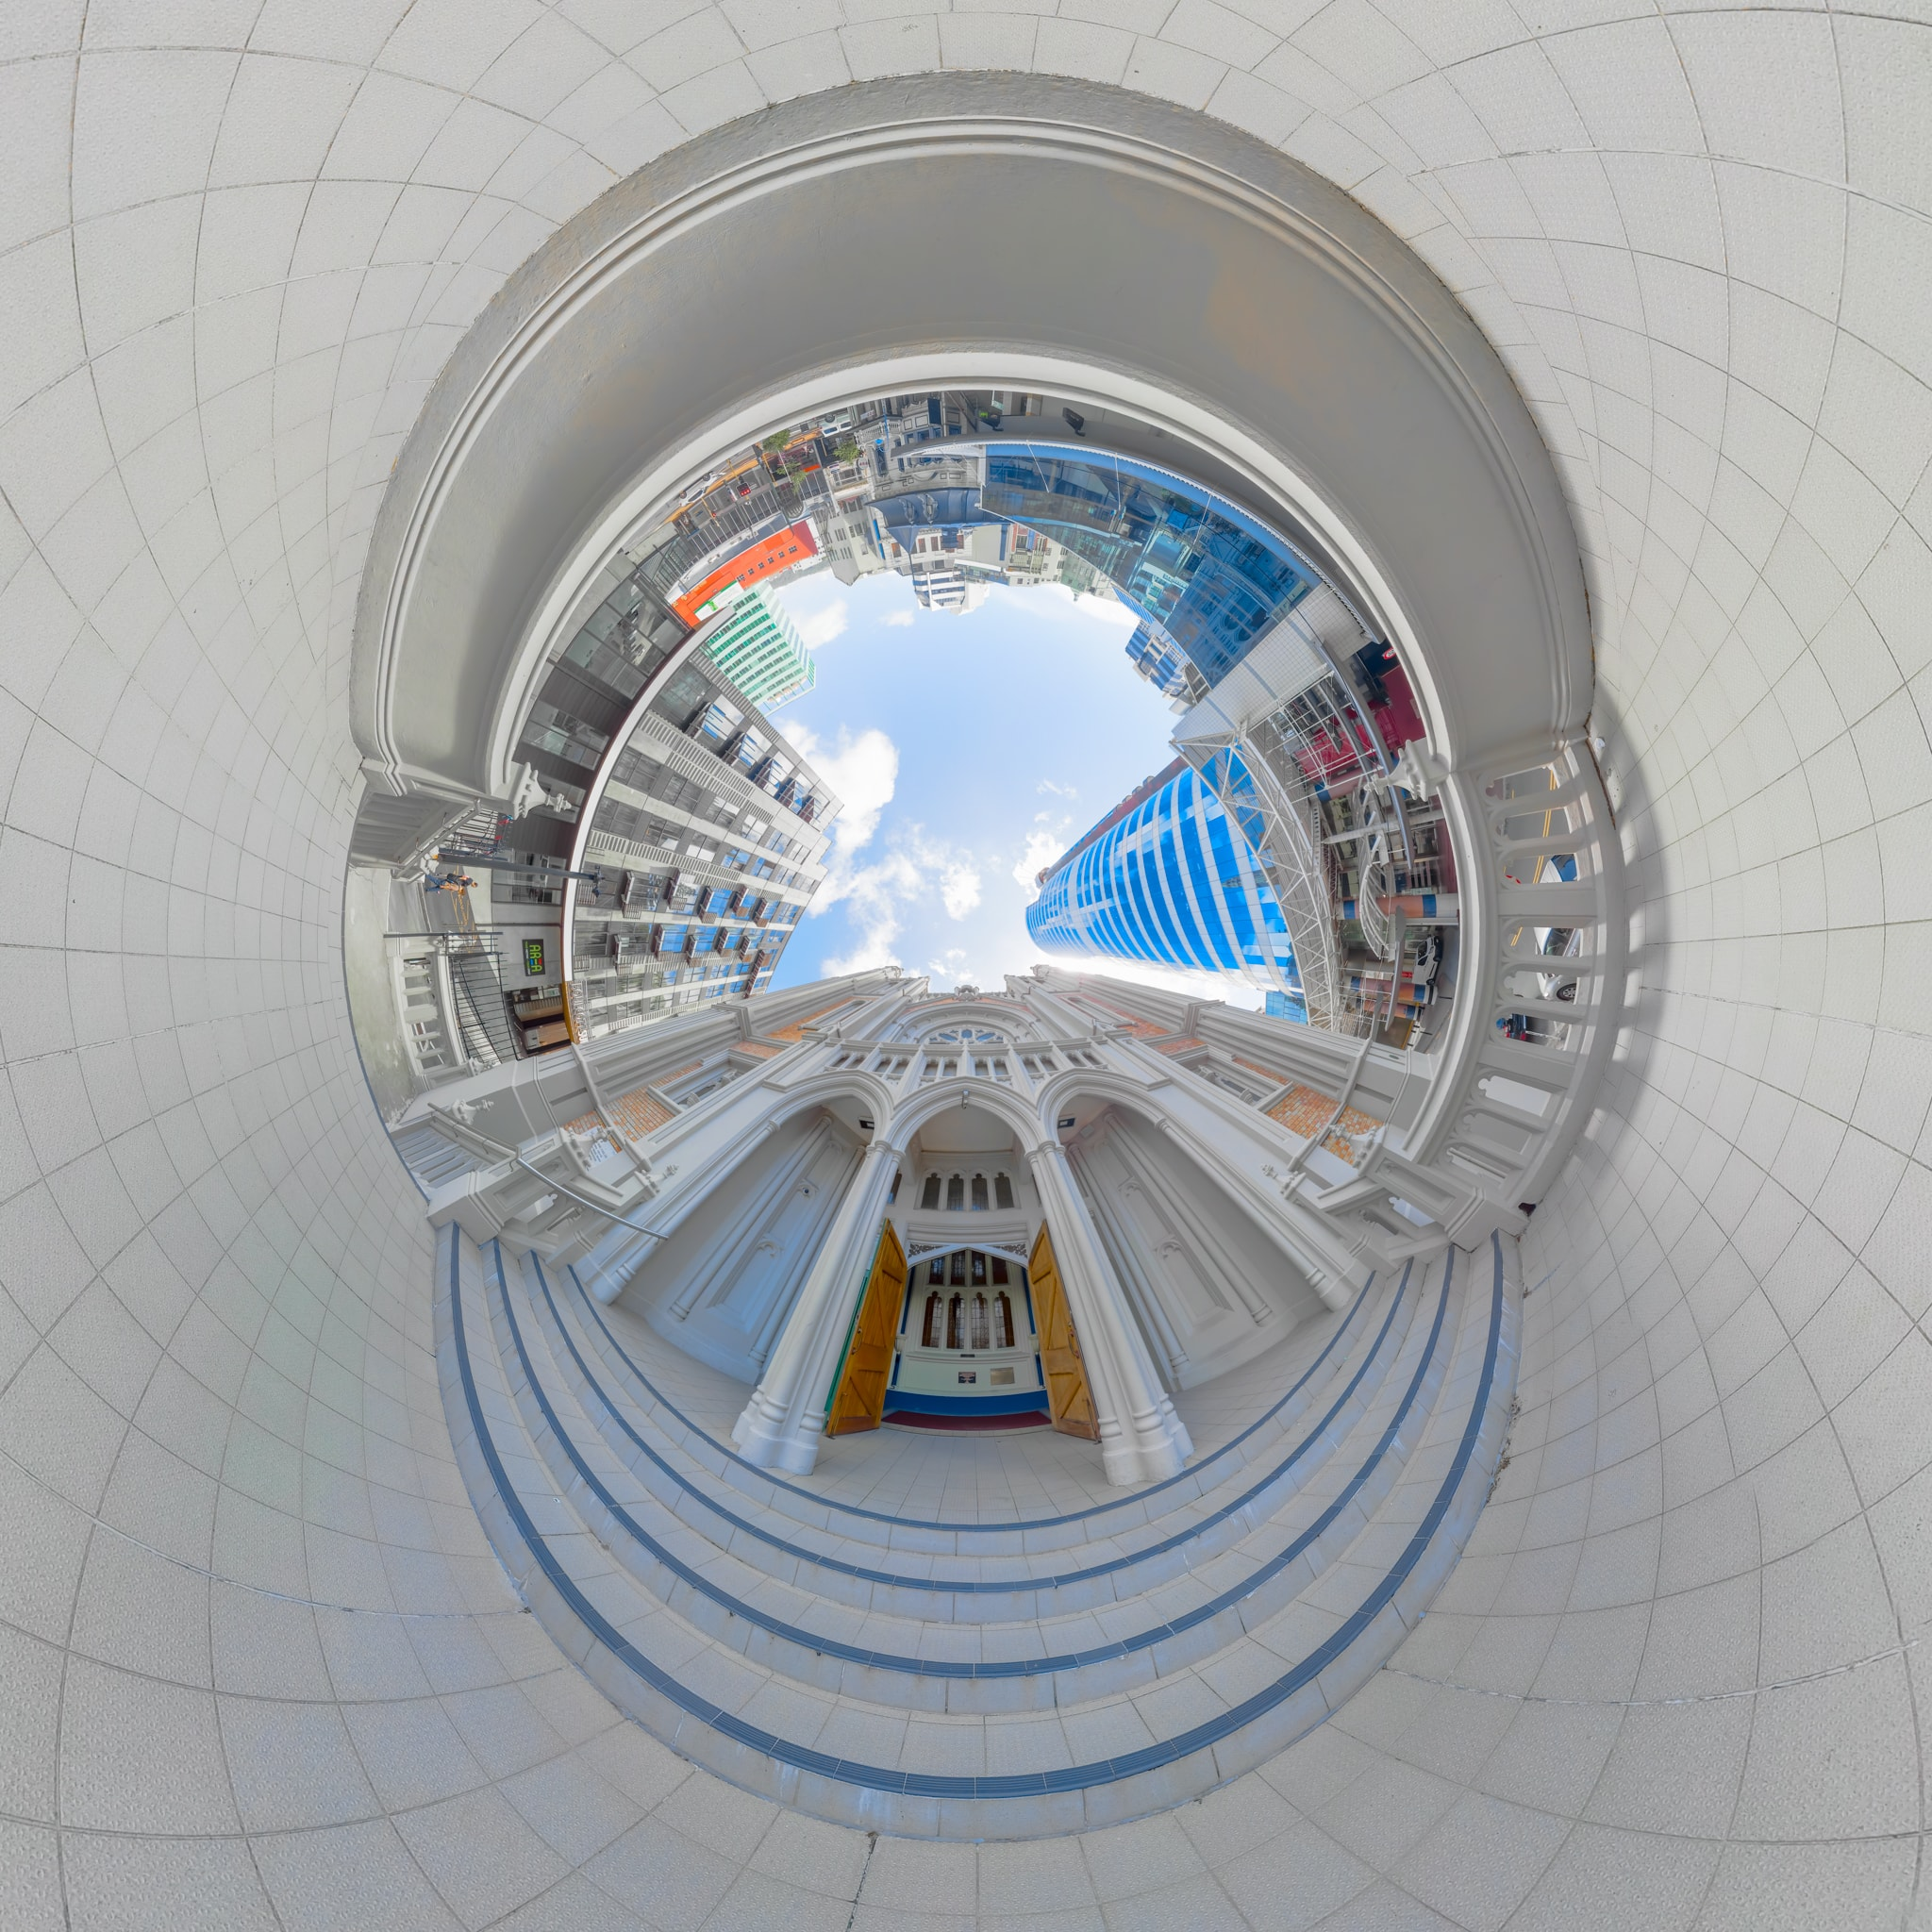 St Marys of the Angels Entrance v2 - Planet